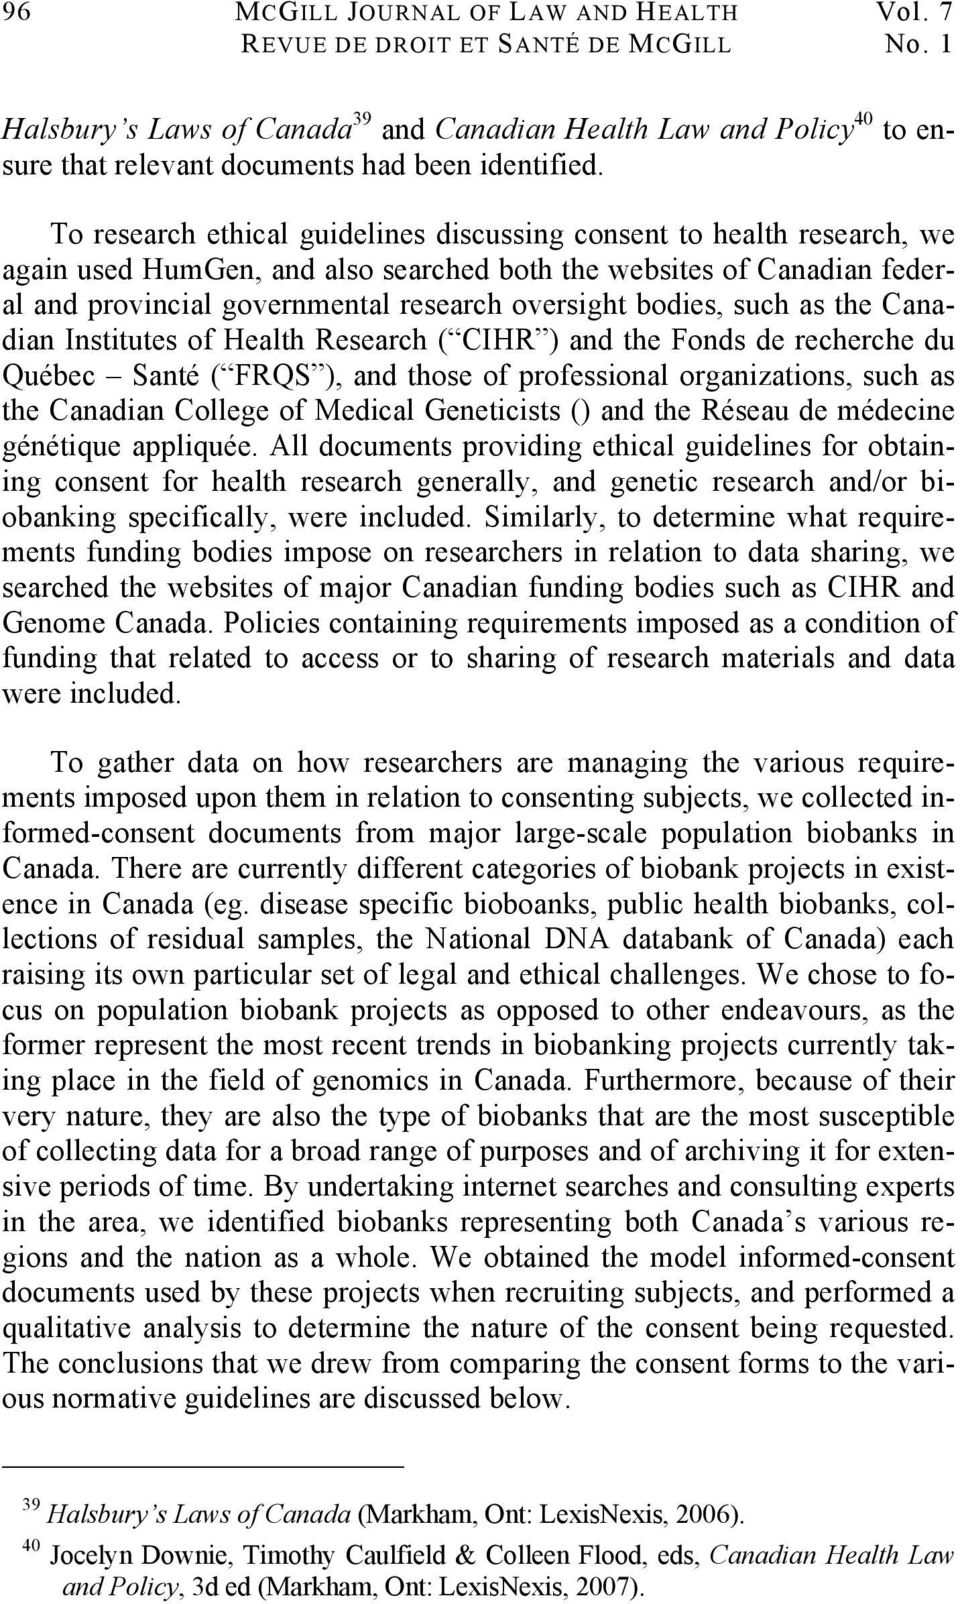 To research ethical guidelines discussing consent to health research, we again used HumGen, and also searched both the websites of Canadian federal and provincial governmental research oversight